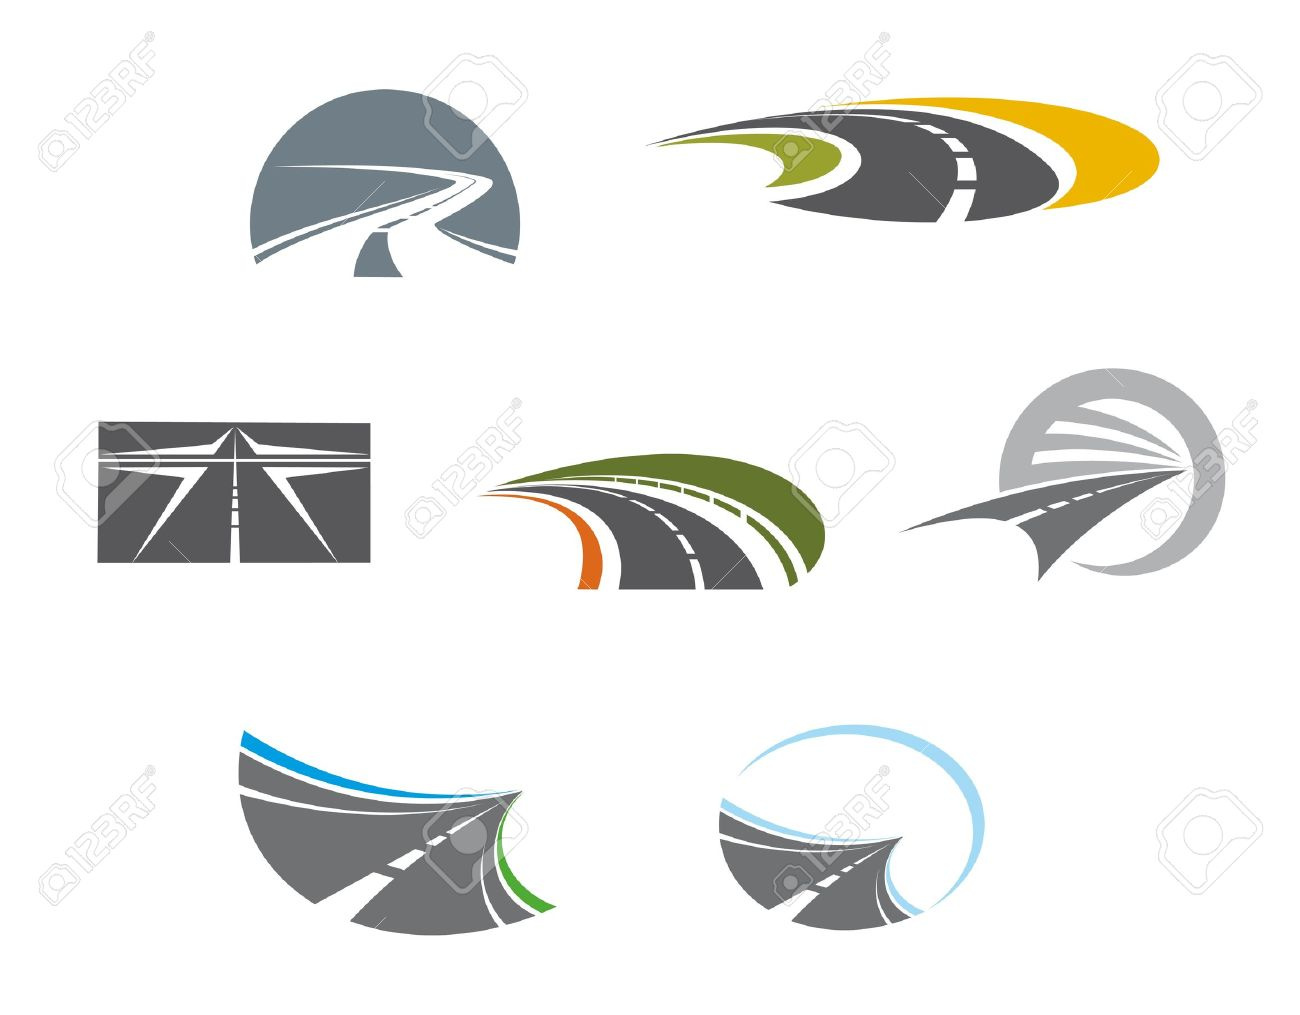 Road symbols and pictograms for transportation design Stock Vector - 15524002